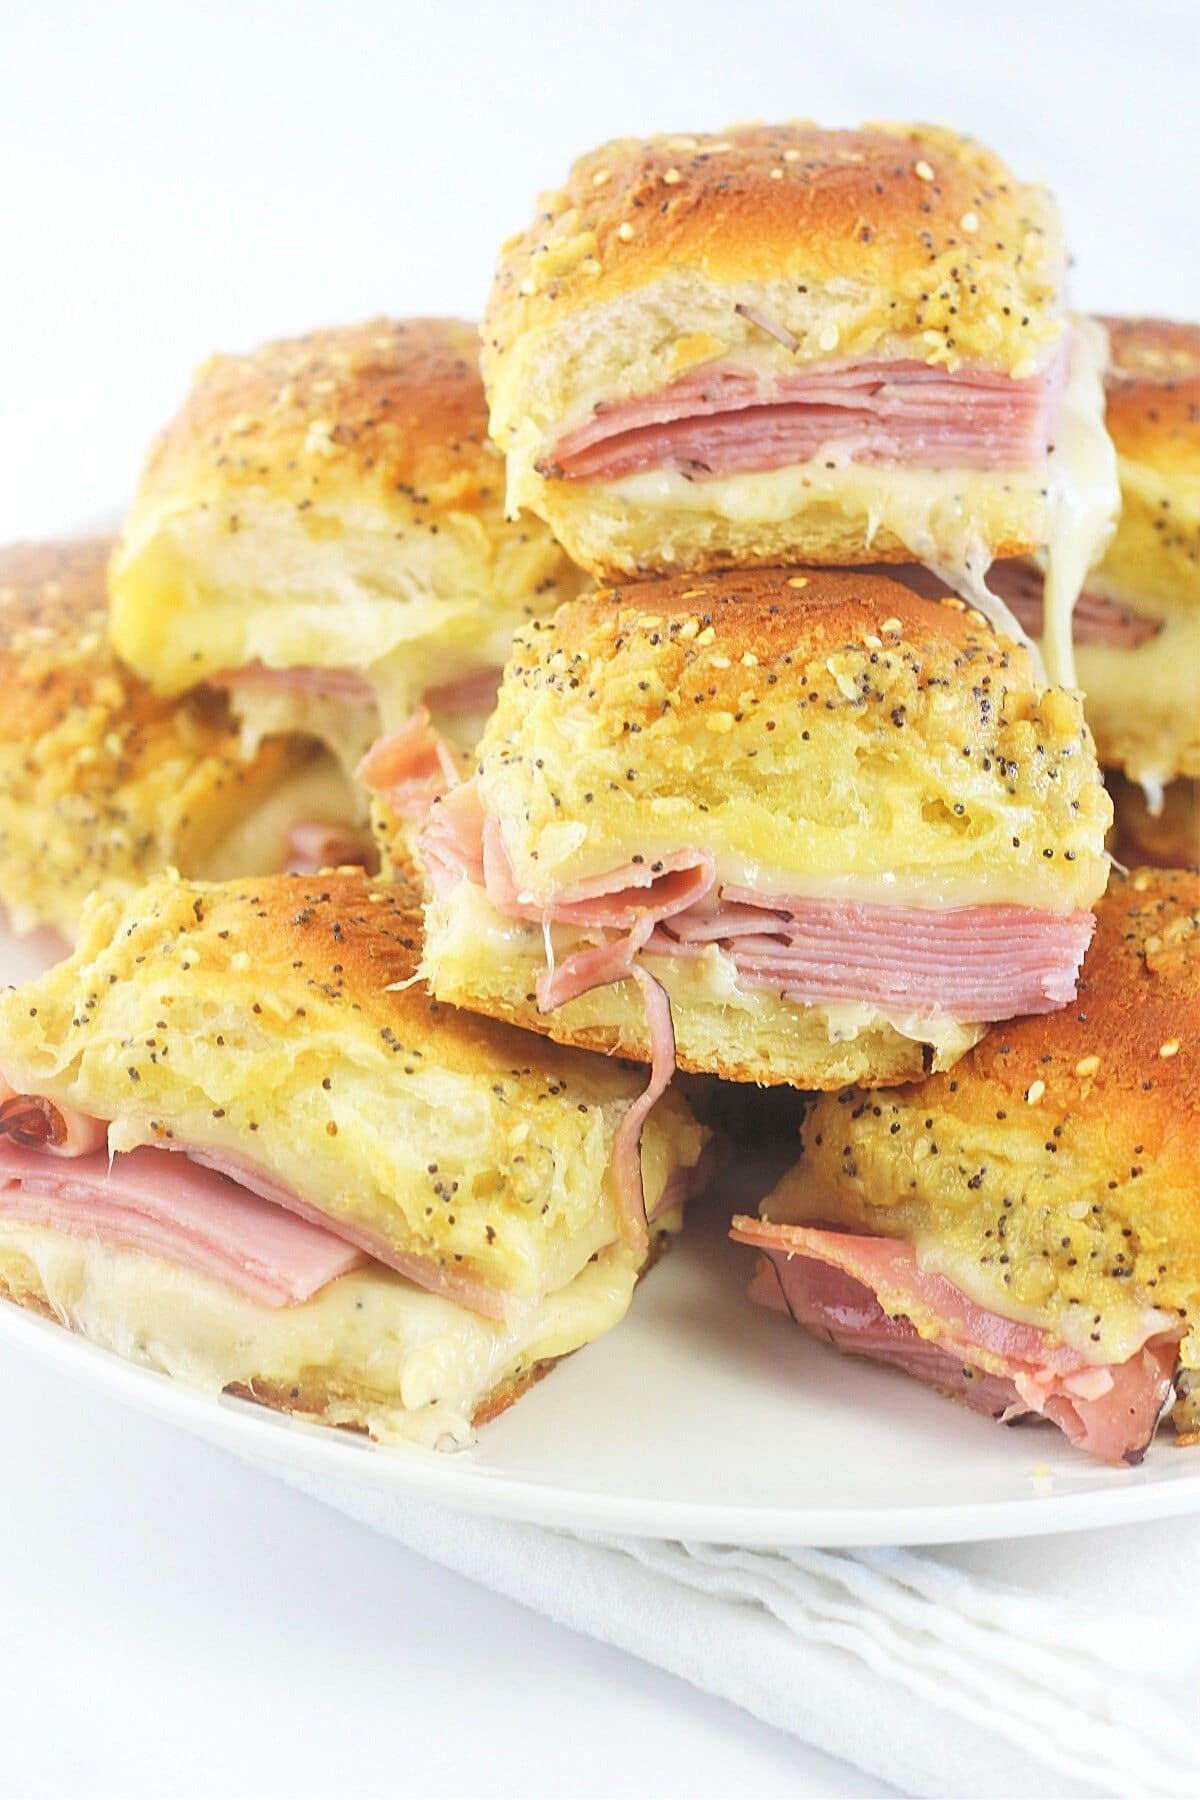 baked ham and cheese sliders with maple, mustard and horseradish piled on a white plate on top of a white napkin